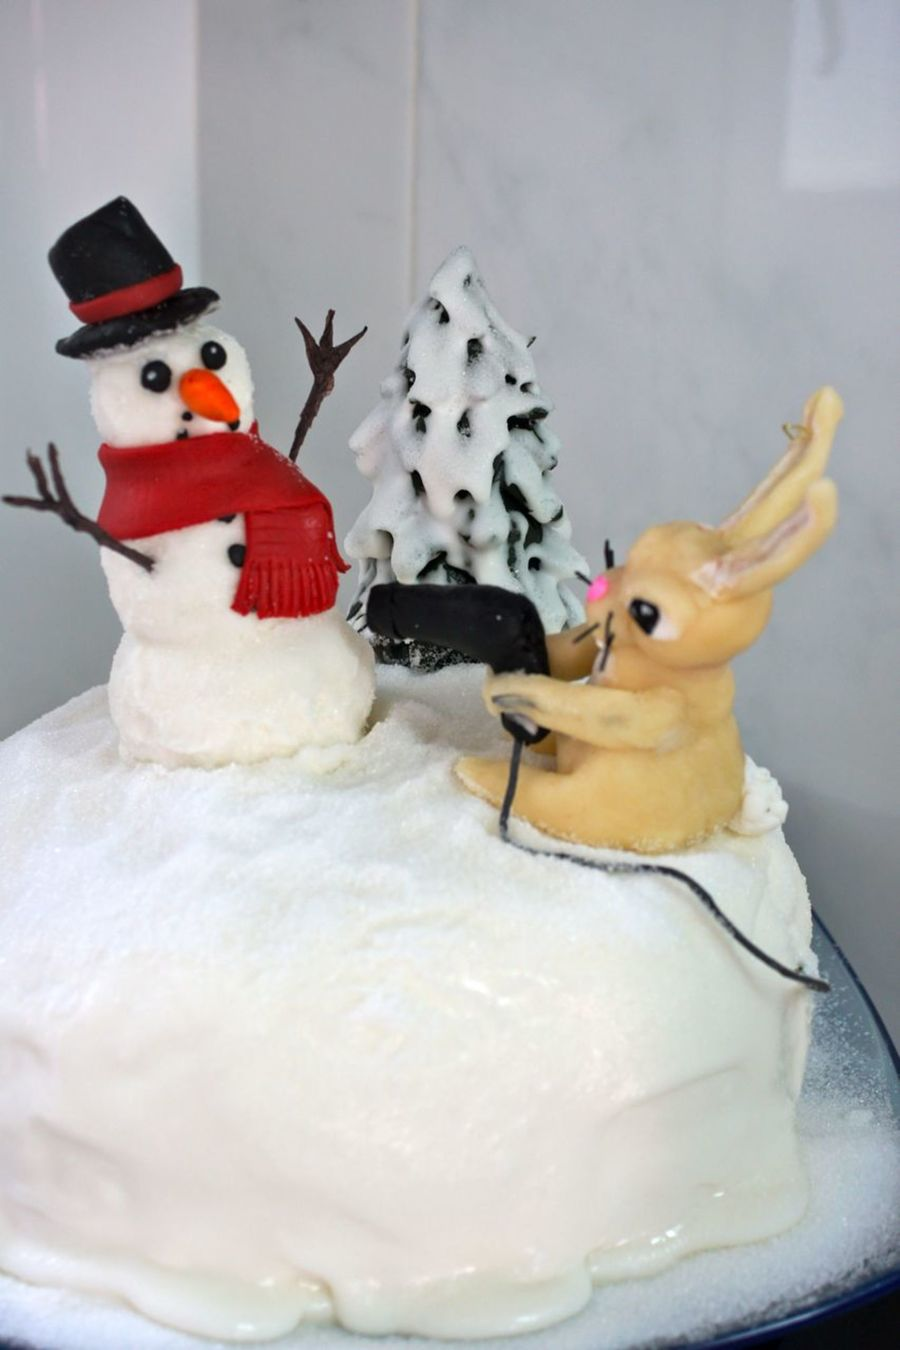 Your Nose Or Your Life, Snowman!  on Cake Central